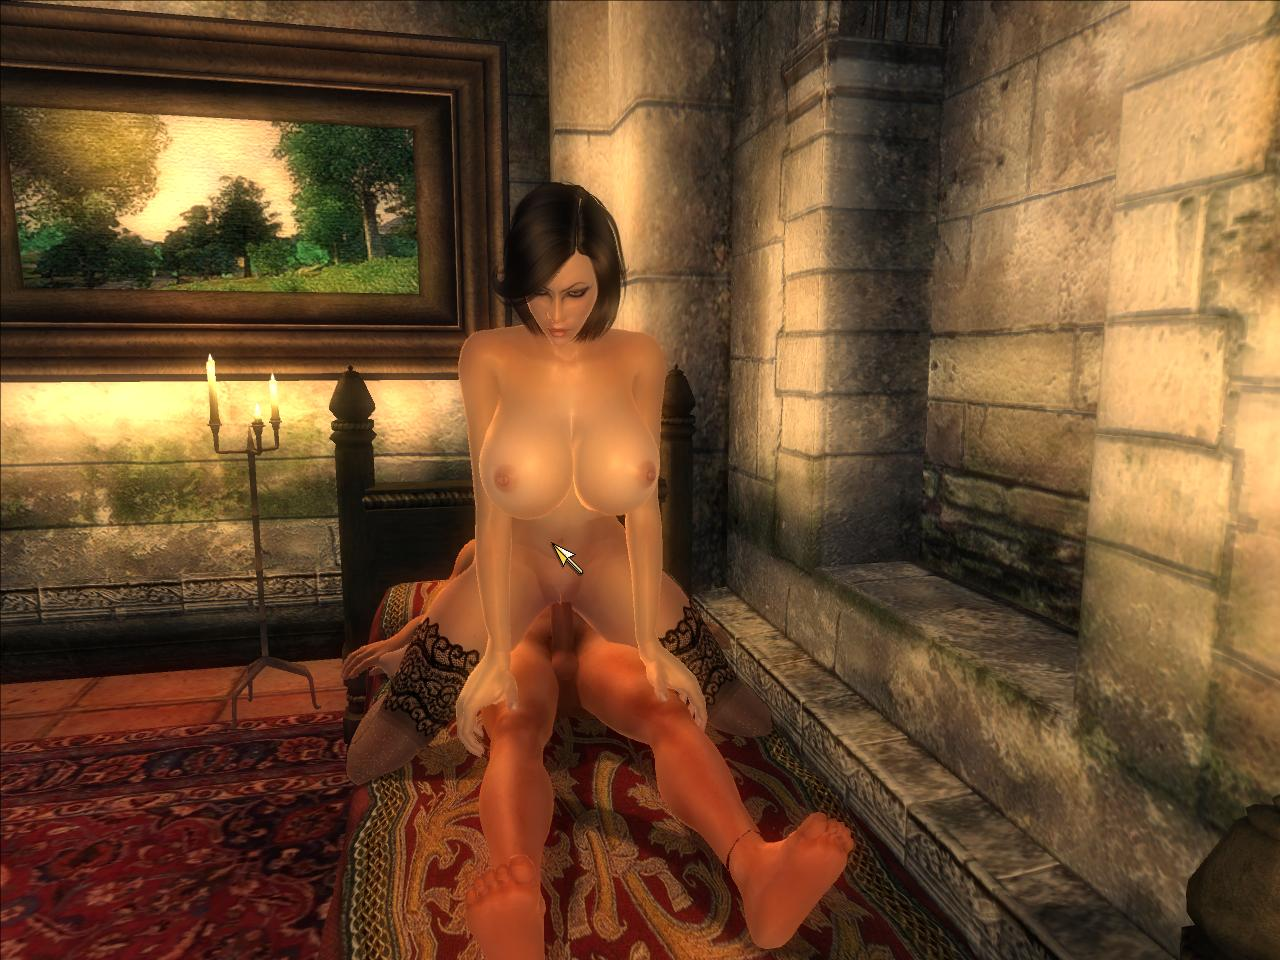 Oblivion sex animations mod porn videos